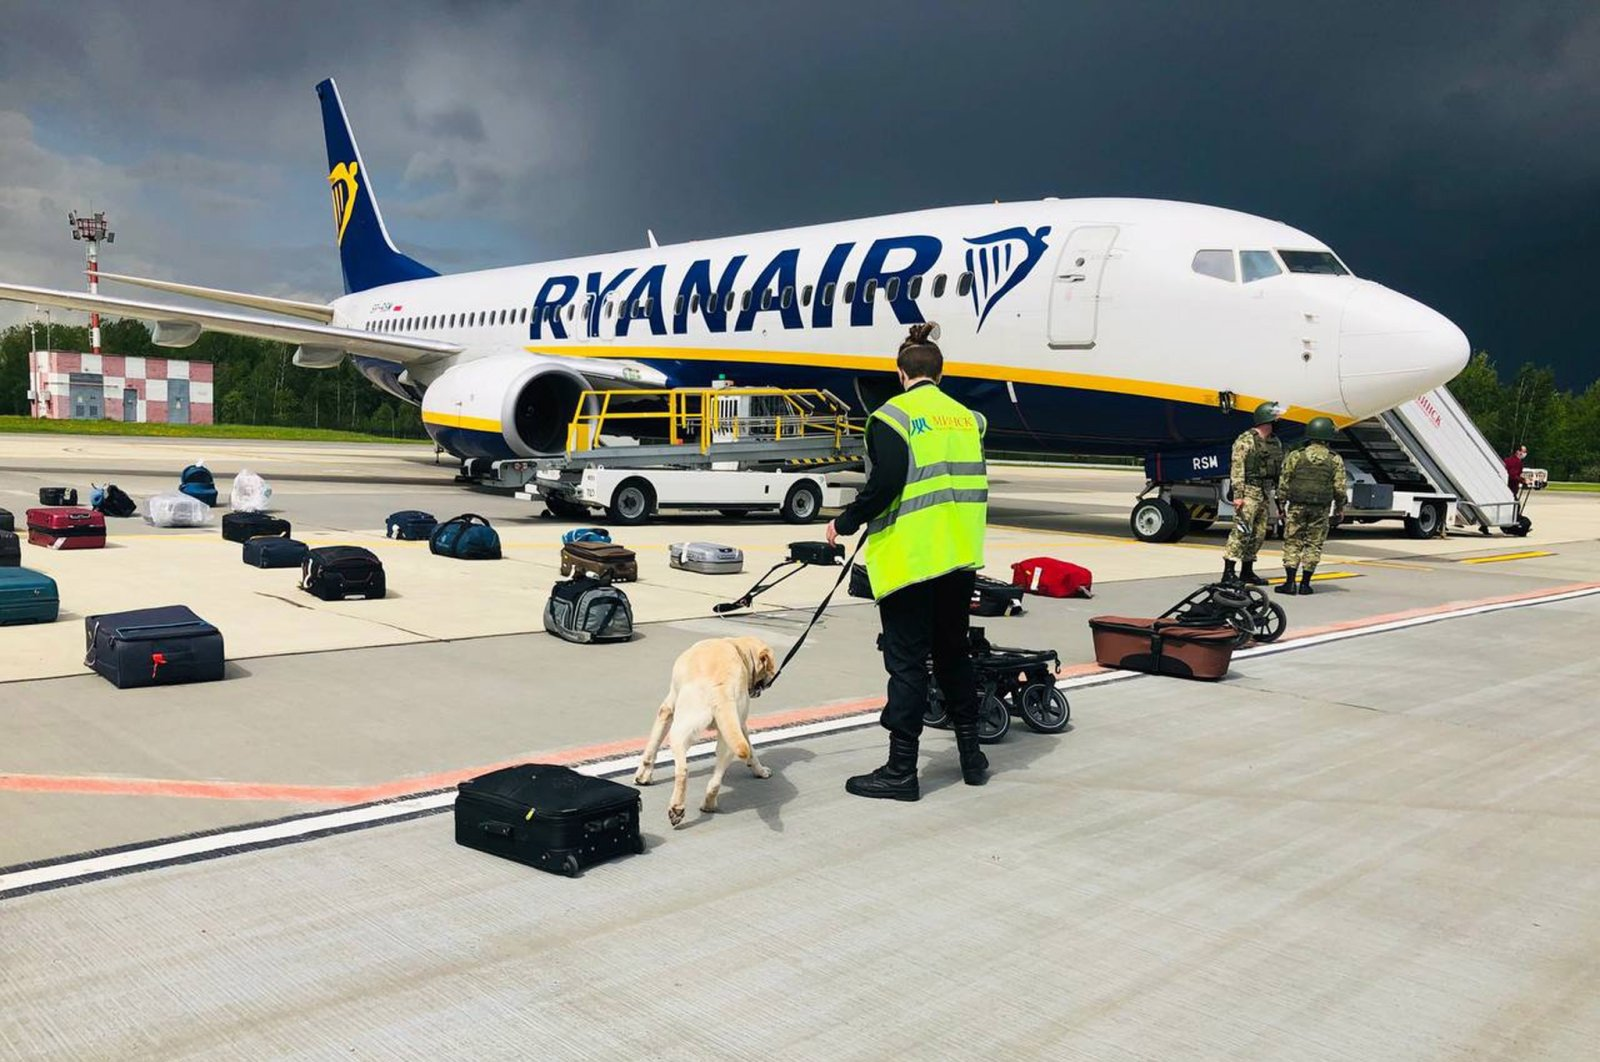 Security with a sniffer dog checks the luggage of passengers in front of the Ryanair Boeing 737-8AS (flight FR4978), carrying opposition figure Roman Protasevich, in Minsk, Belarus, May 23, 2021. (EPA Photo / ONLINER.BY handout photo)